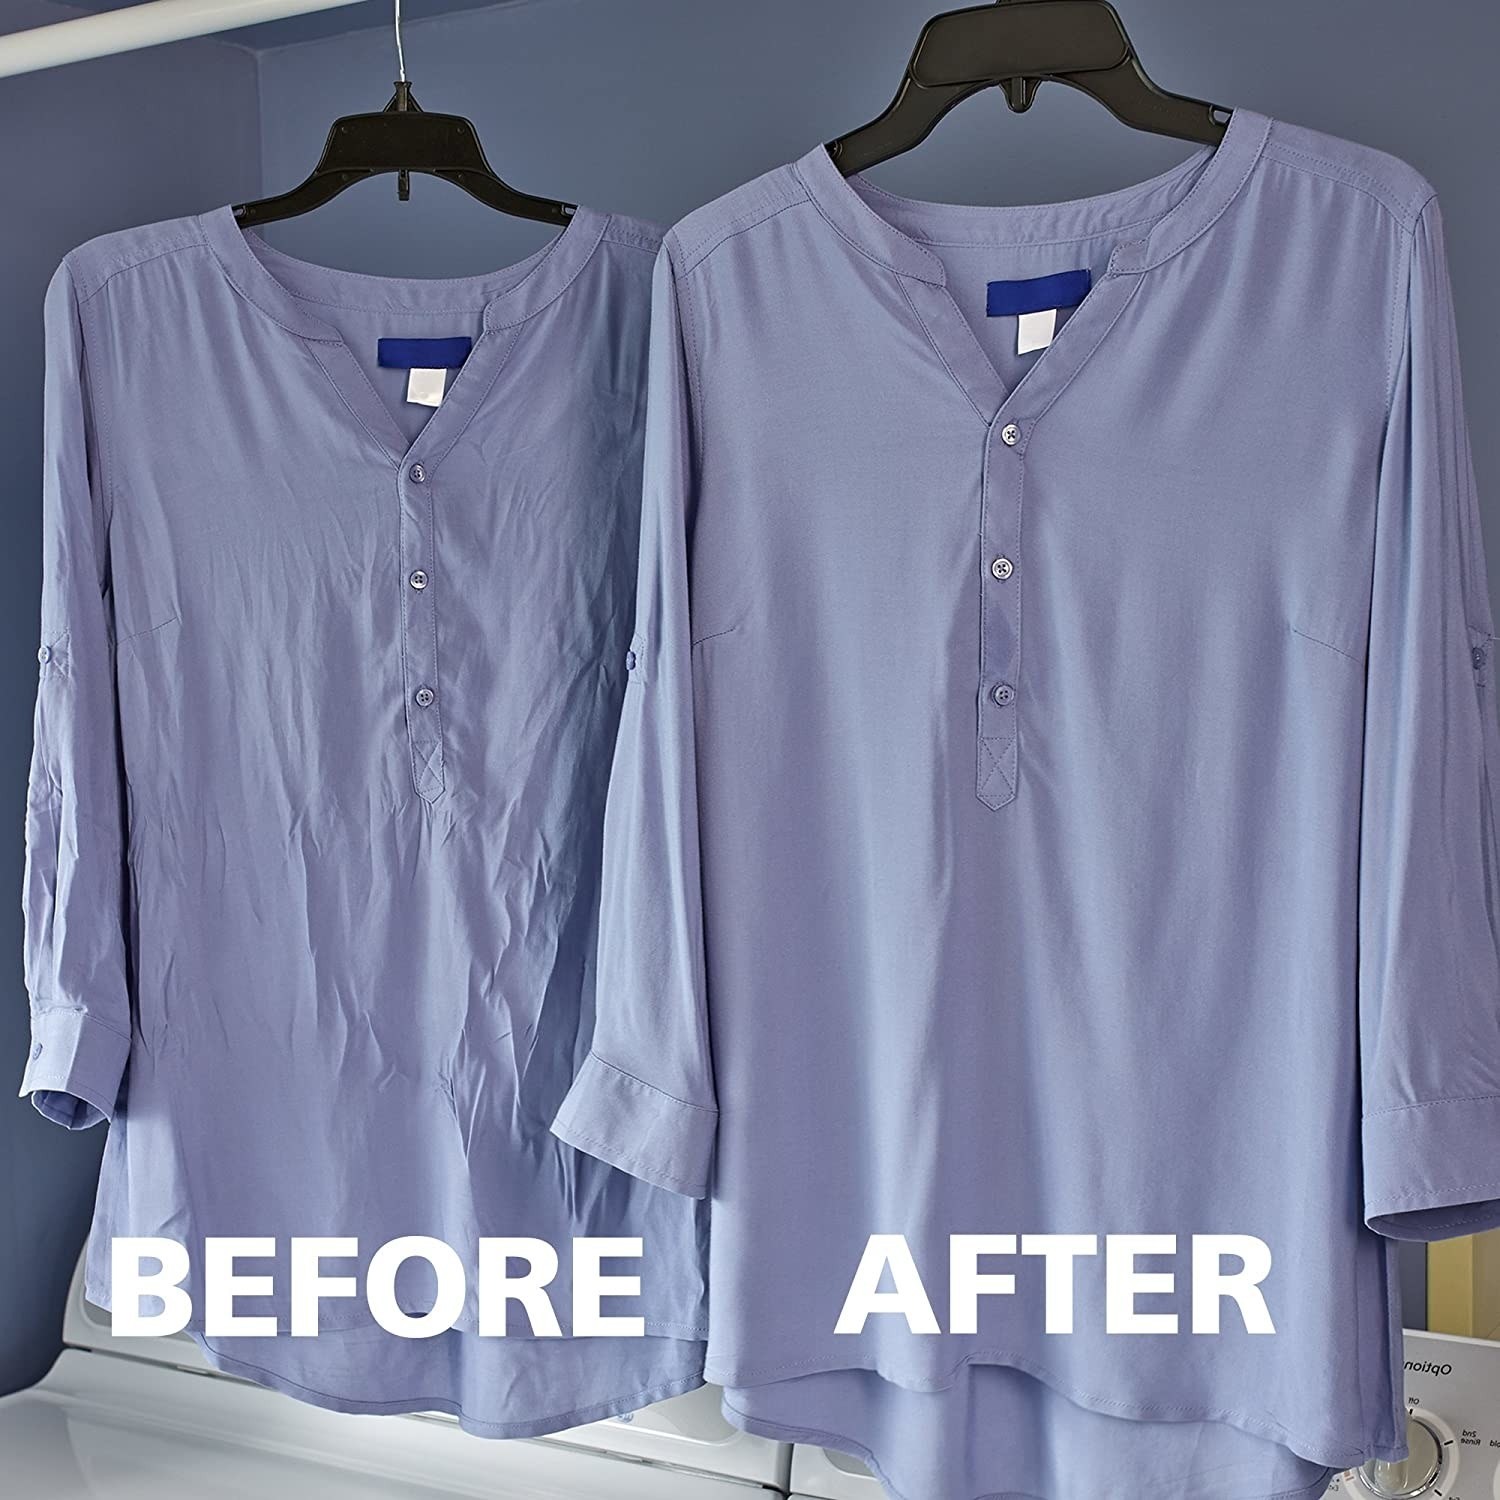 A comparison of before and after using the Woolite sheets on a long-sleeved shirt